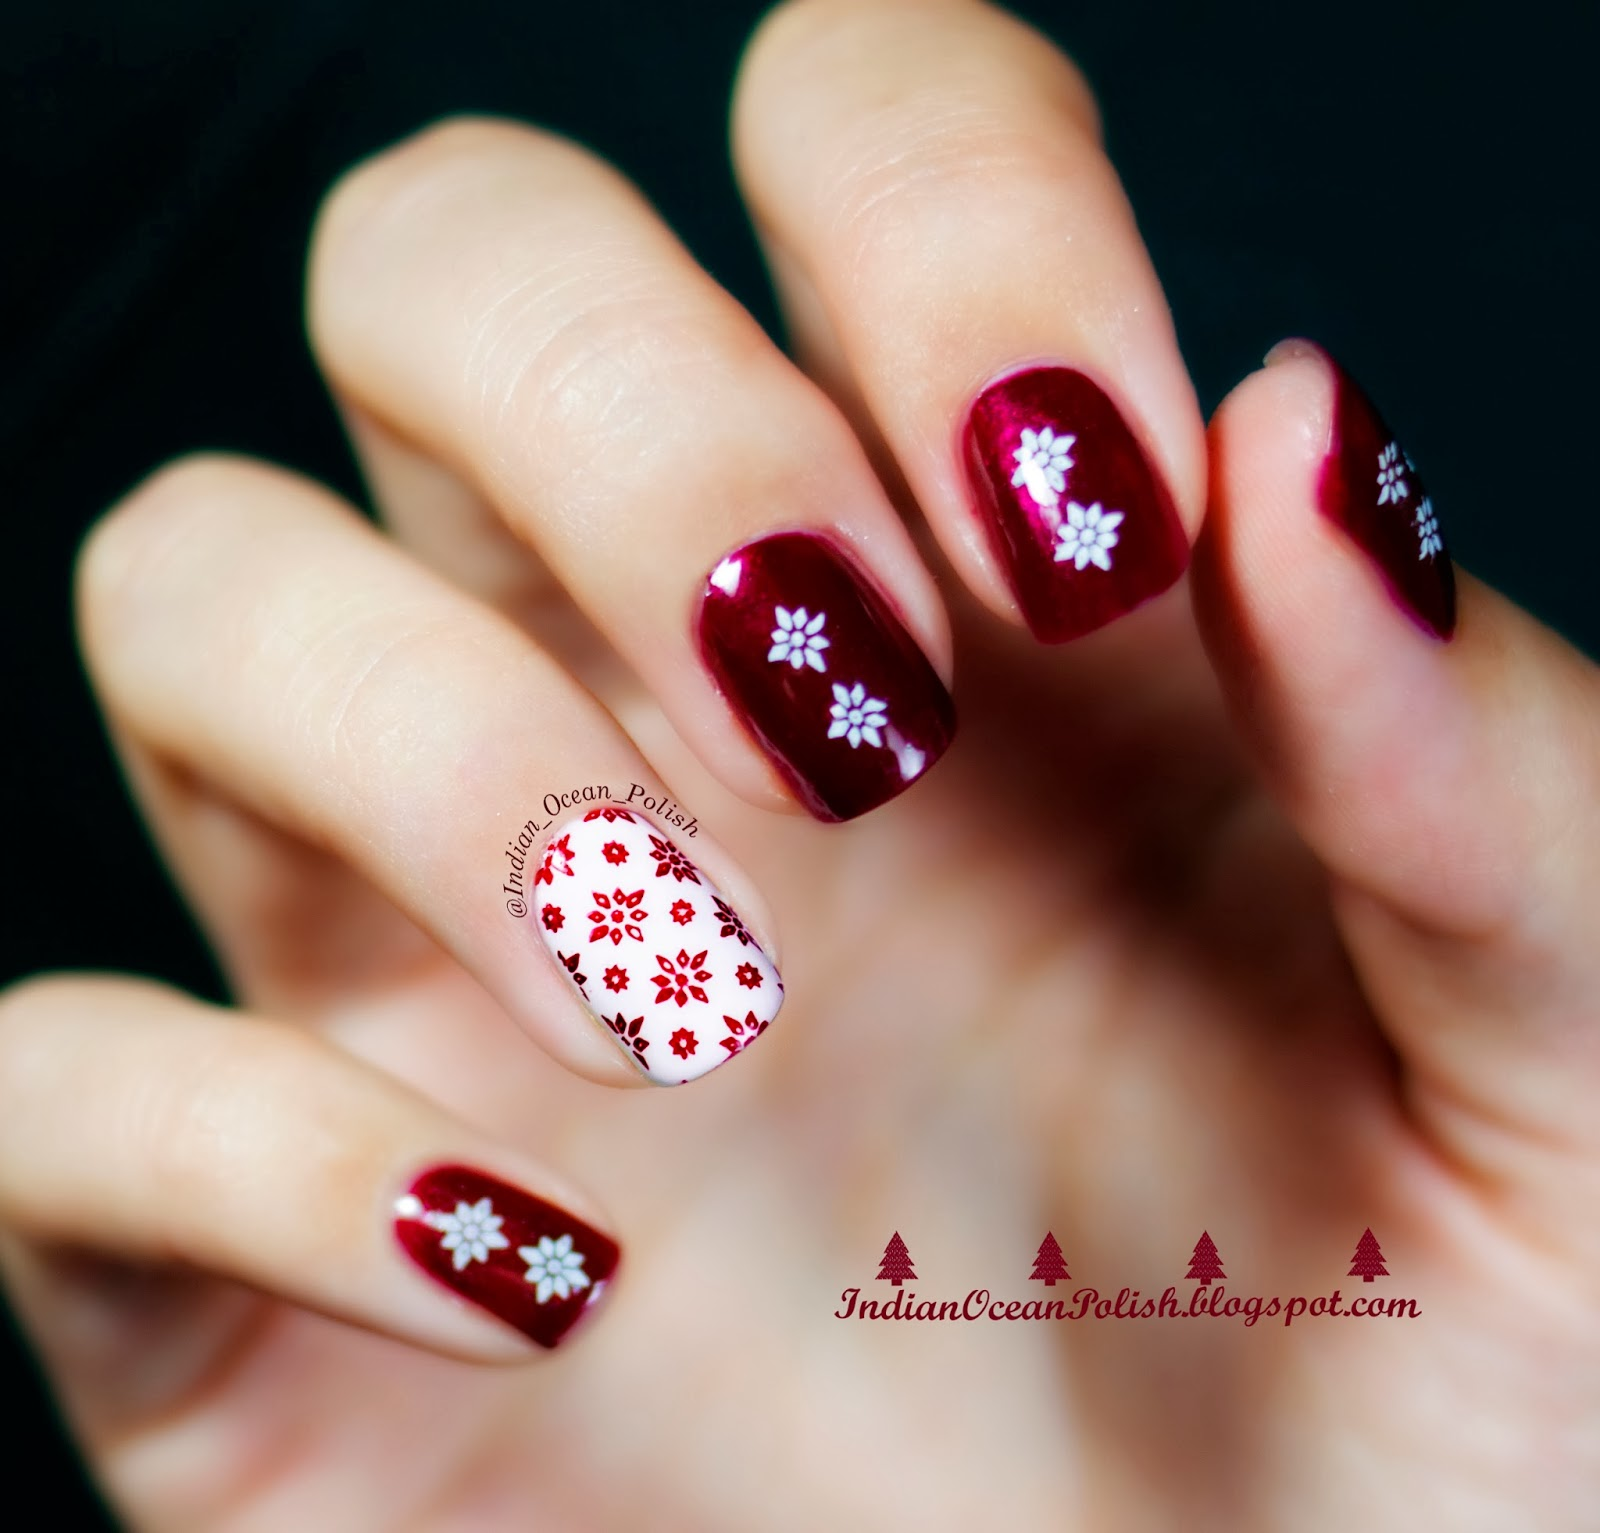 Indian Ocean Polish: Christmas 2013 Nail Art Ideas: Simple and Not ...